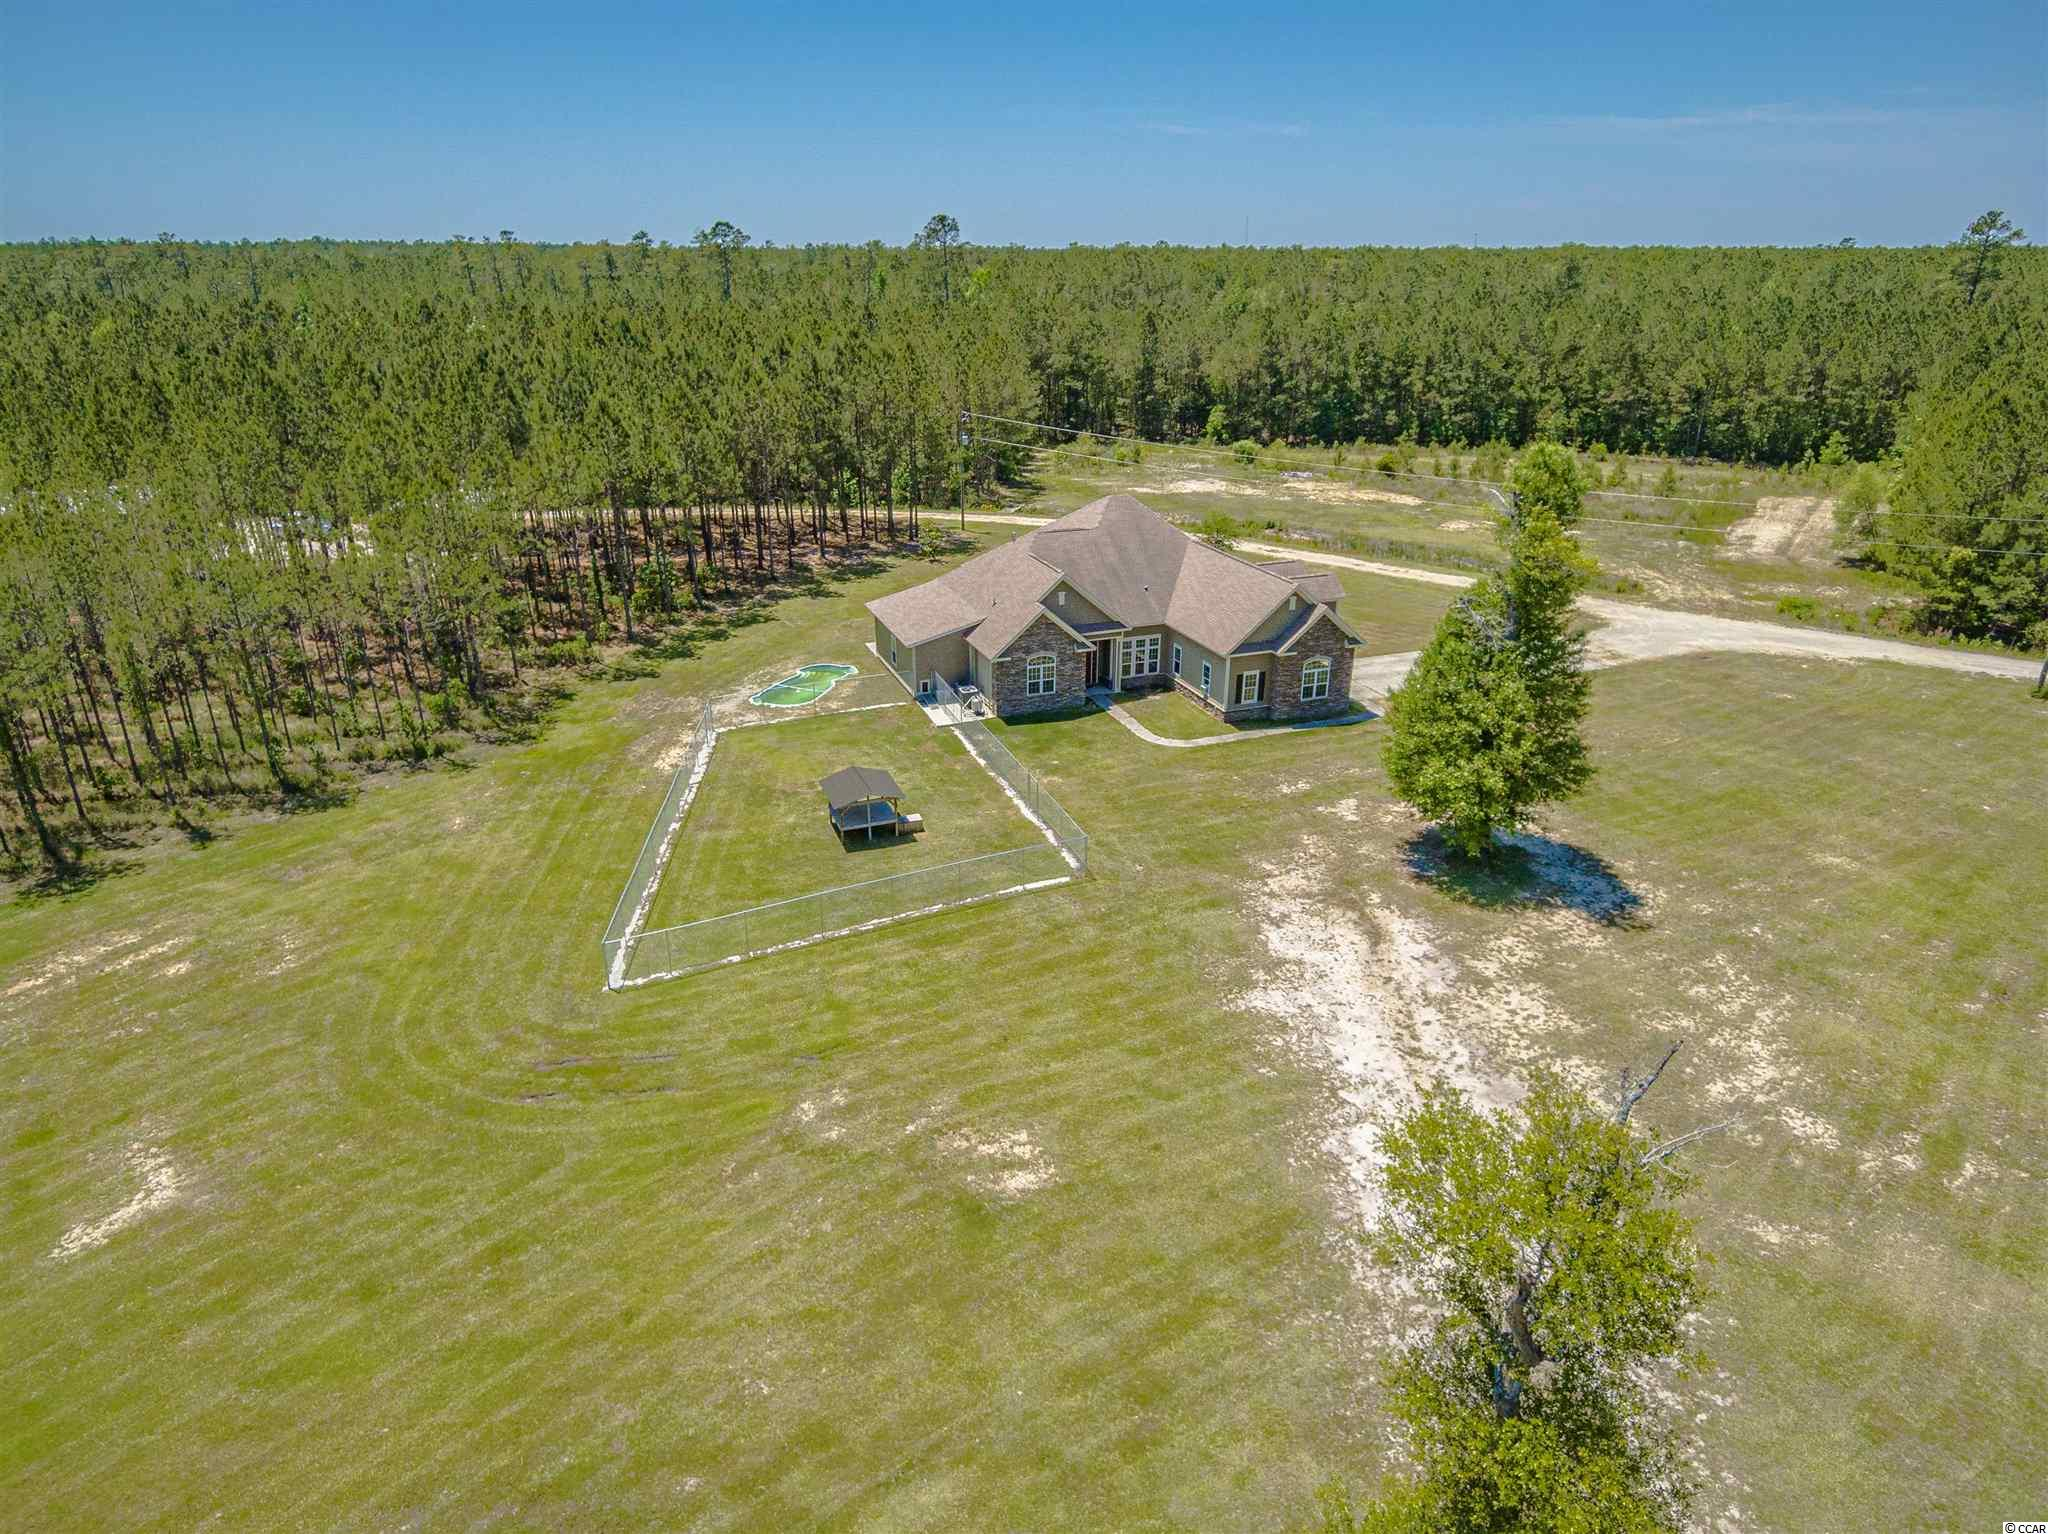 This 70 acre tree farm surrounds an amazing custom built home.  The 4 bedroom 3 bath private country home with in ground pool sits on 6 acres of cleared land and has 2 large buildings that are steps from the house.  A few of the features this custom home offers are solid surface countertops, coffered ceilings, built in cabinets with stone accents and storage galore.  The largest of the 2 buildings is 40x100, has 2 offices, a man cave and hanger doors to make bringing your equipment inside a breeze.  The second building is 24x36 with pass through garage doors. There are almost 2 miles of perimeter roads to ride ATVs or 4 wheel drive vehicles.  The wild life on this property is abundant.  The location of this home offers privacy while being only 20 minutes to the beach, golf and shopping.